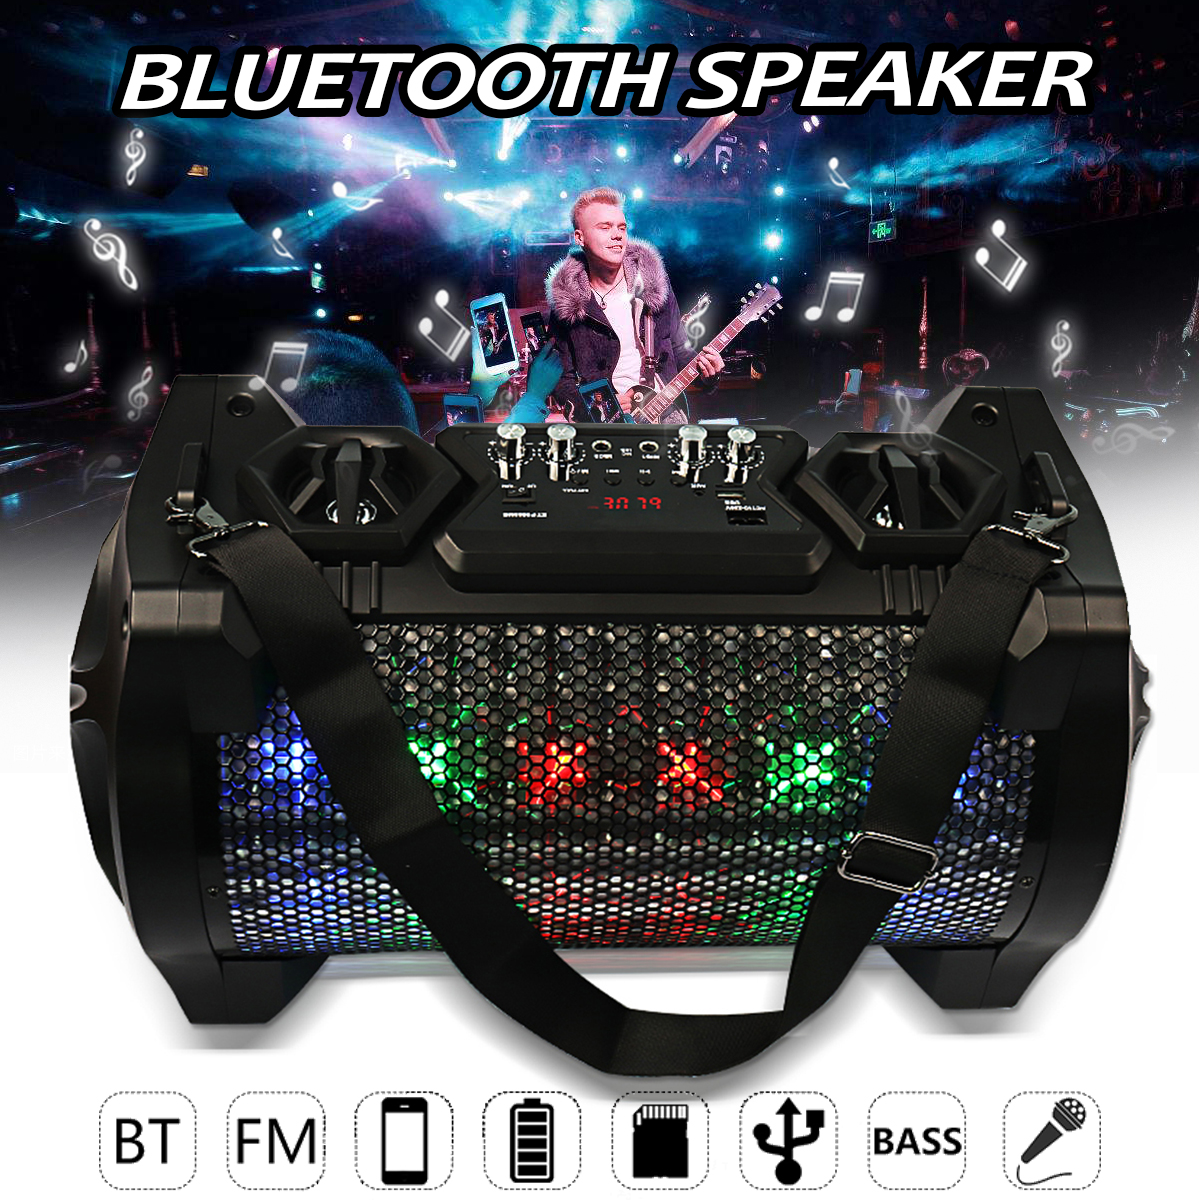 Portable Wireless Bluetooth Speaker Bass Stereo FM Radio AUX/USB/TF Card Loudspeaker Subwoofer Handfree For Outdoor Music Player super bass outdoor bluetooth speaker wireless sports portable subwoofer bike car music speakers tf card aux mp3 player